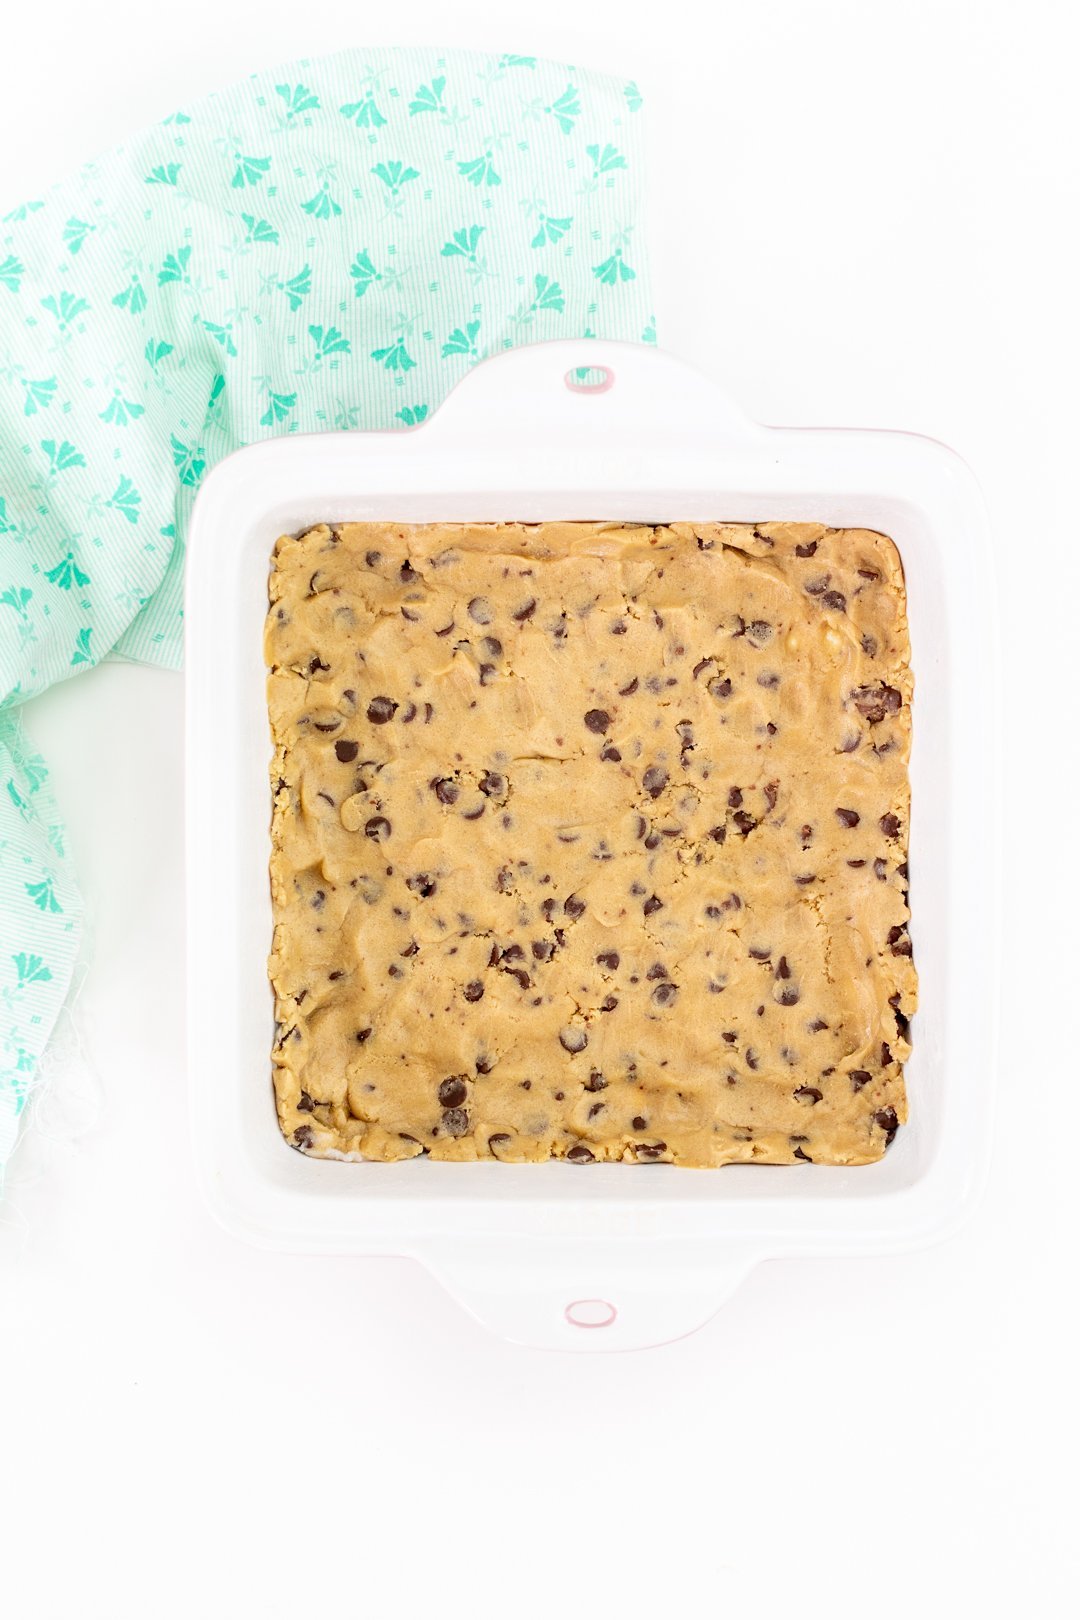 chocolate chip cookie dough pressed into baking dish